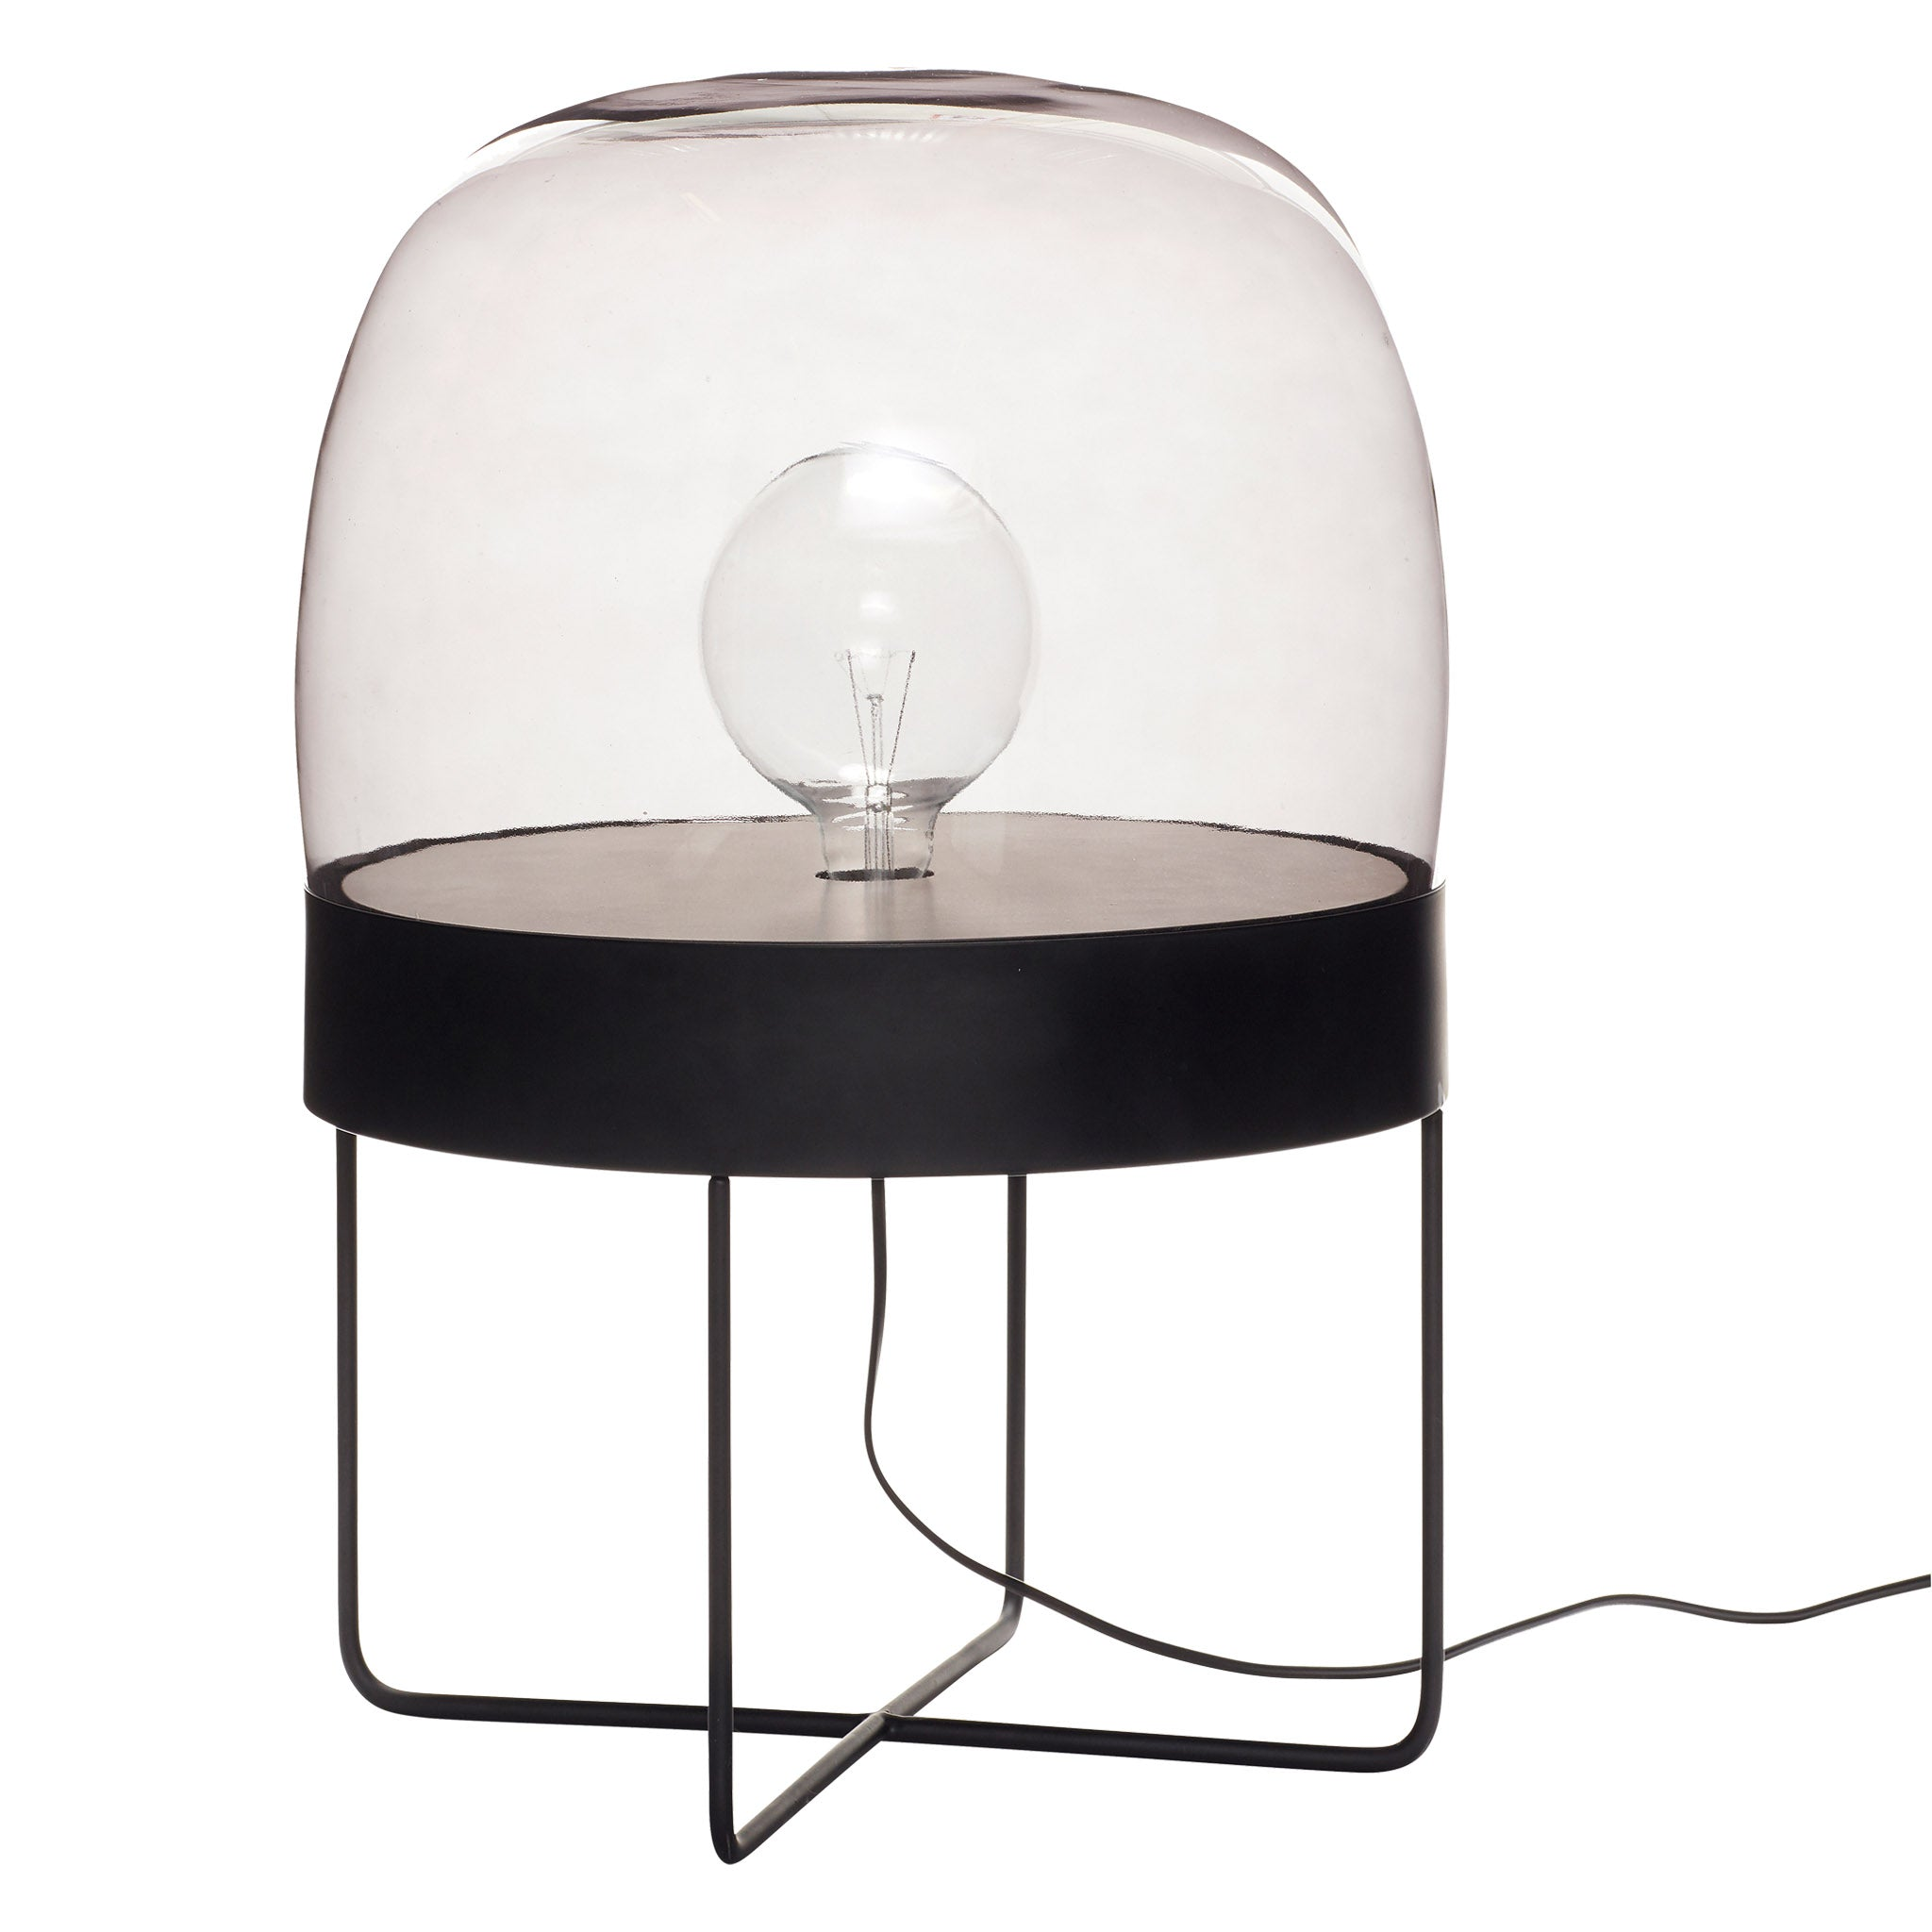 Floor Lamp - Black (Smoked Glass) - Five And Dime